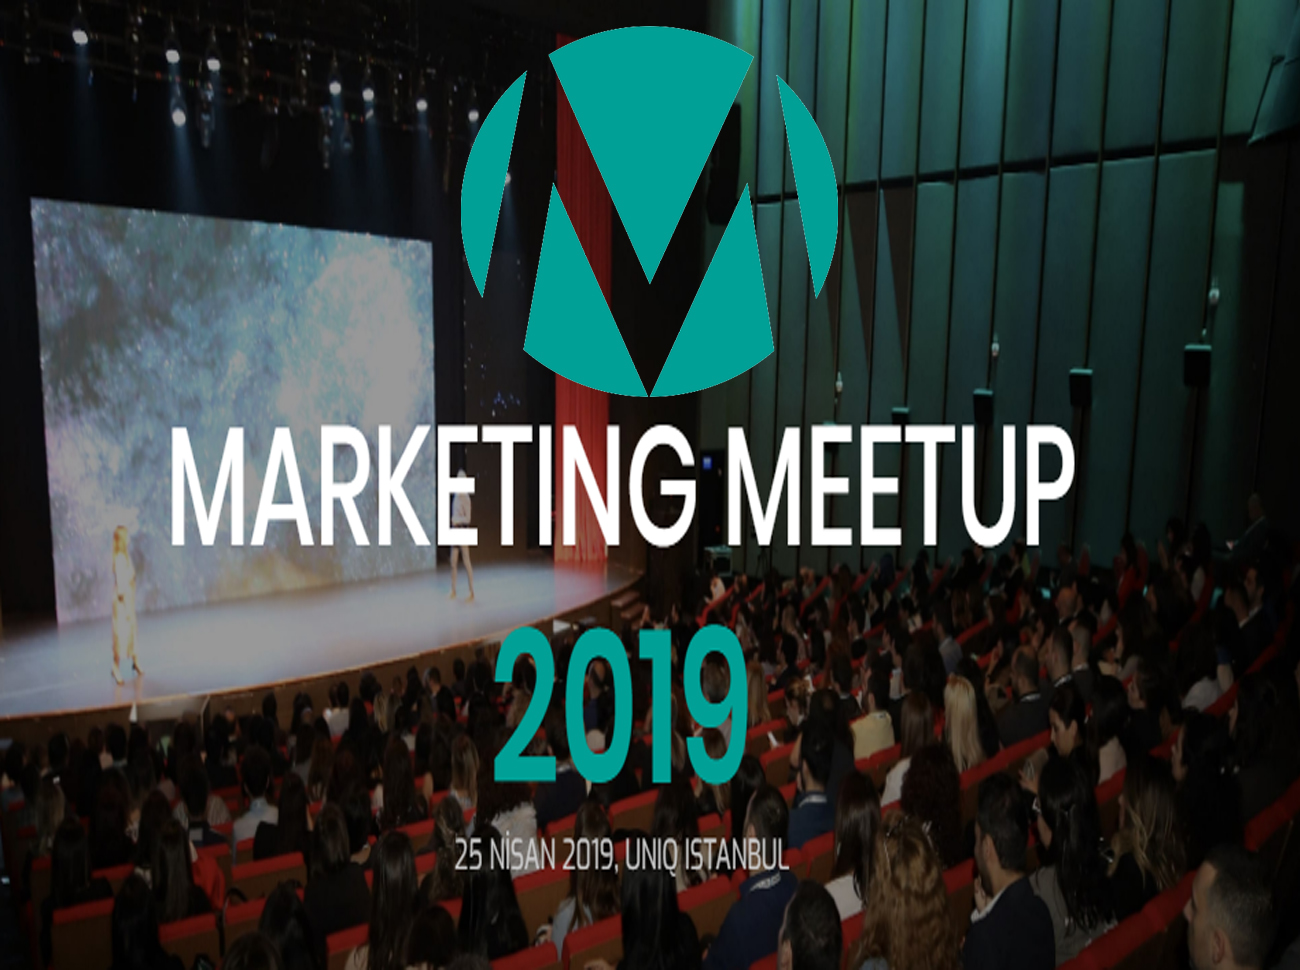 Marketing Meetup Happiness Temasıyla 25 Nisan'da